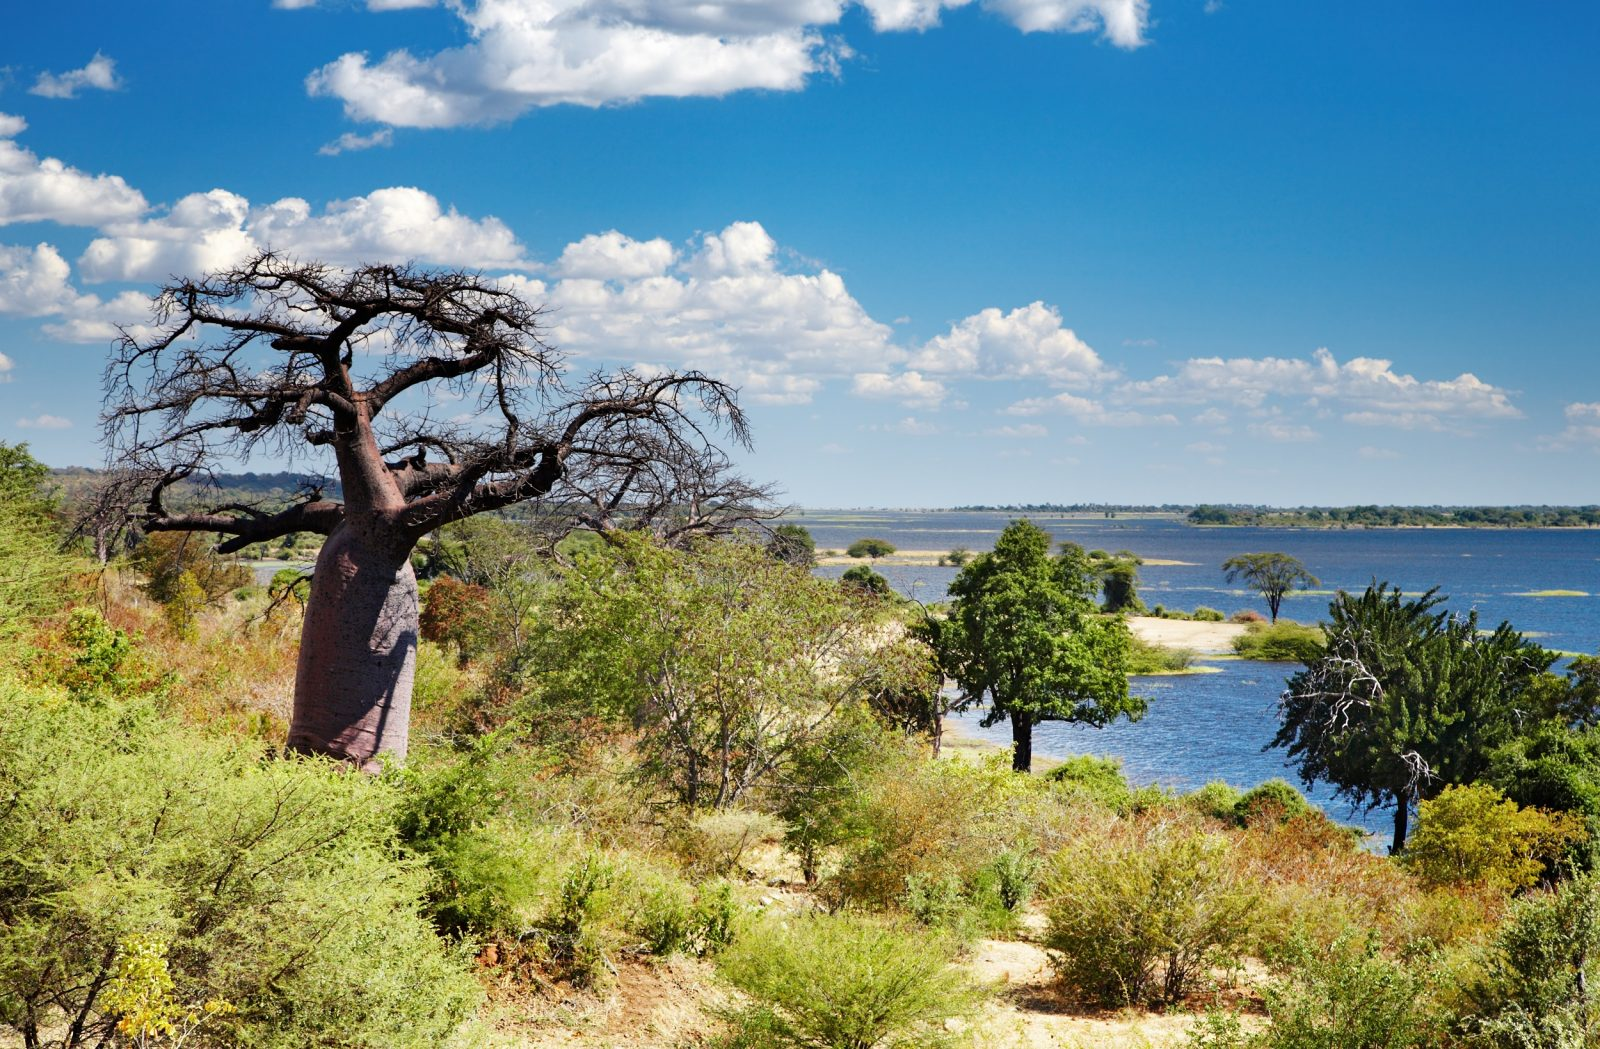 Seasons in Zimbabwe and Botswana